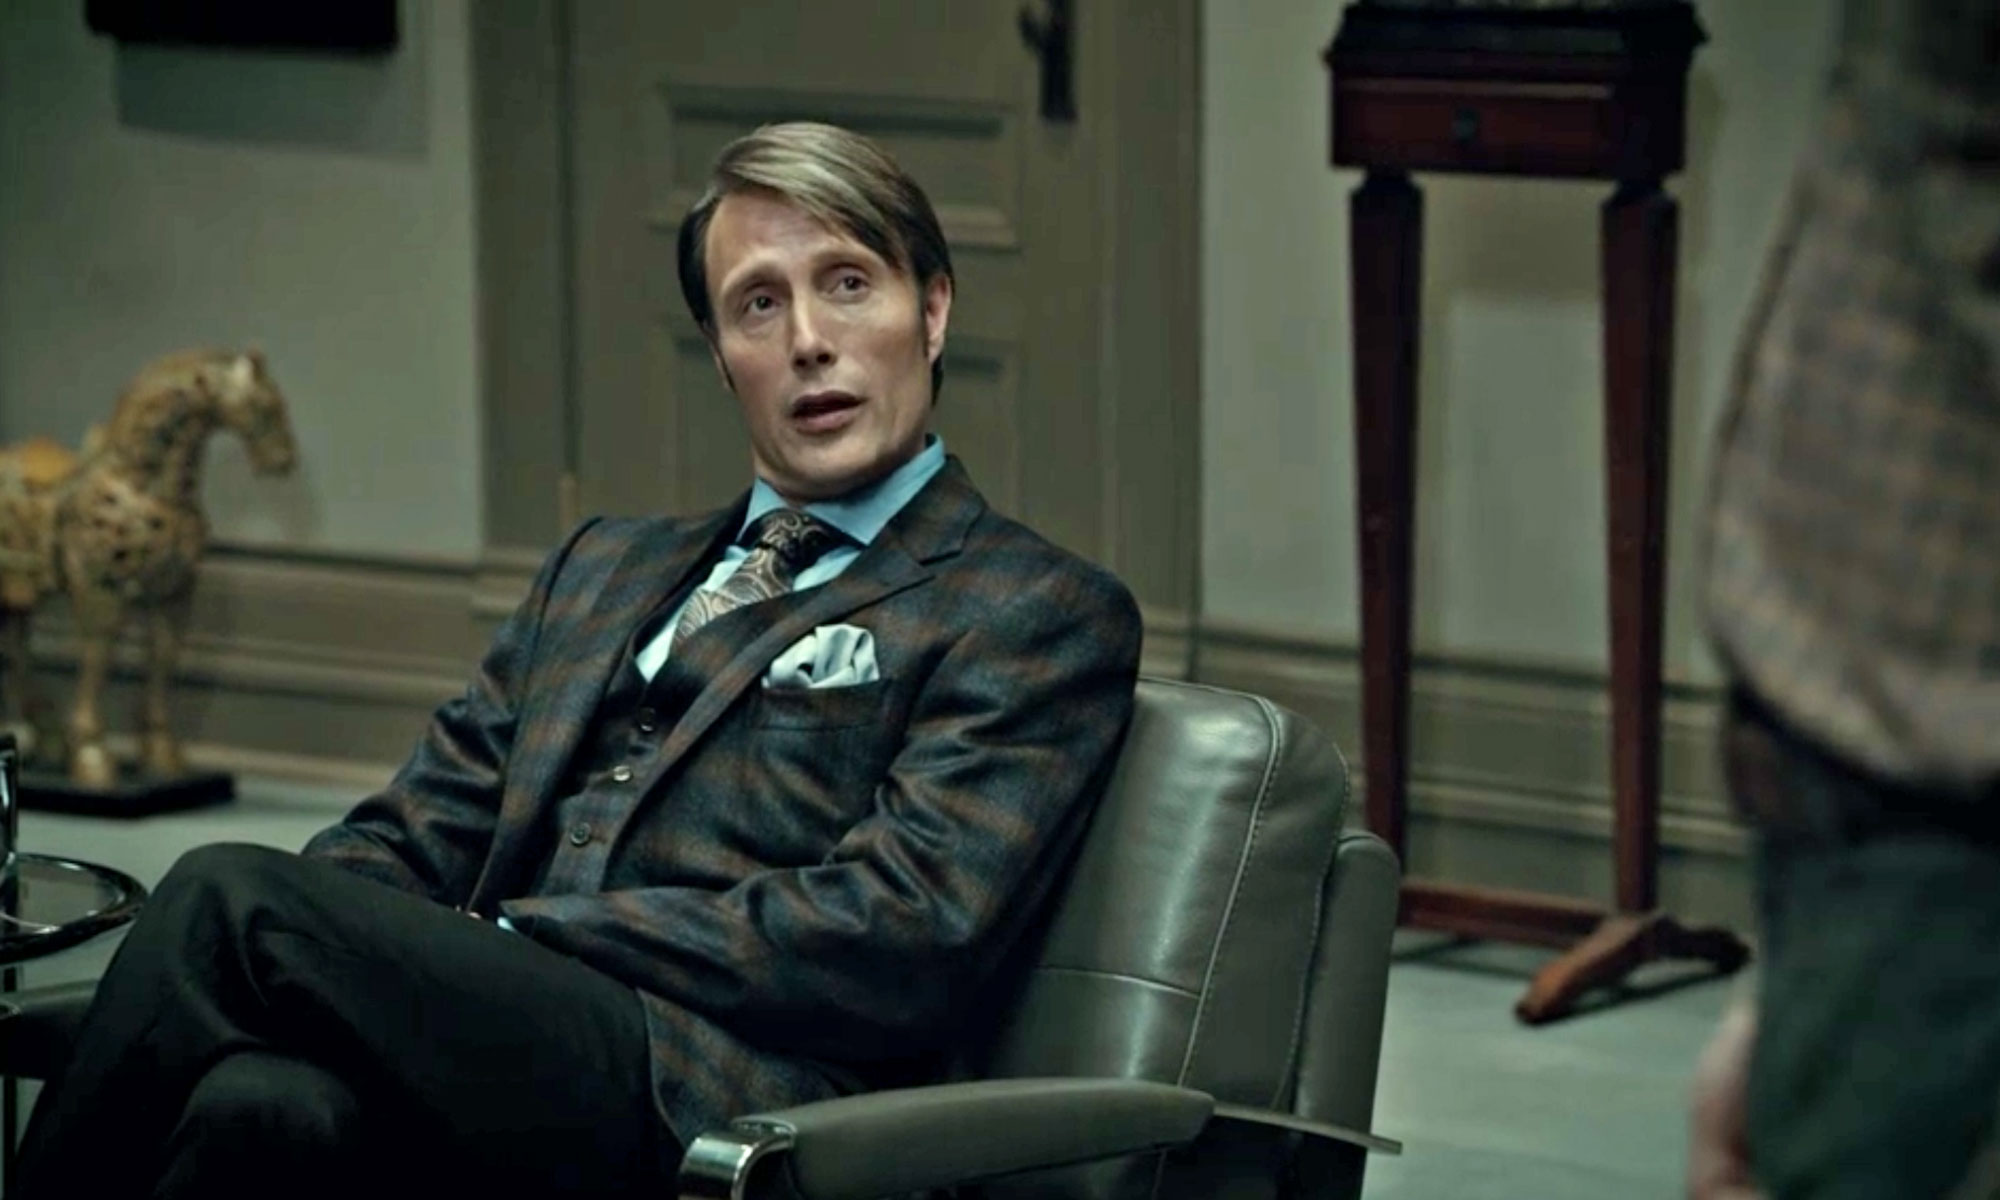 pocket square folds Hannibal sitting down in a three piece